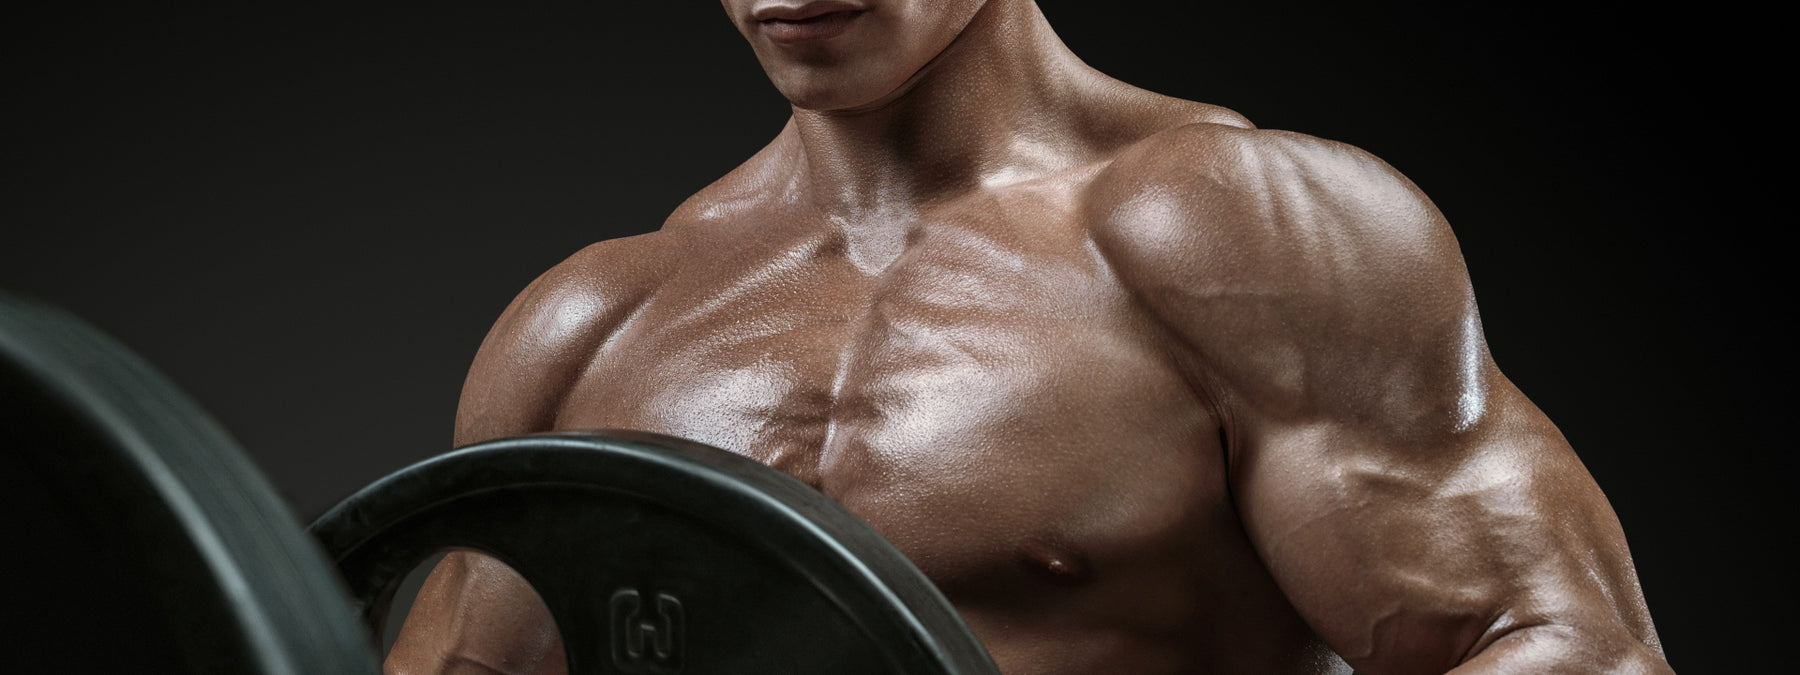 How to pump pectoral muscles: useful tips for beginners 97